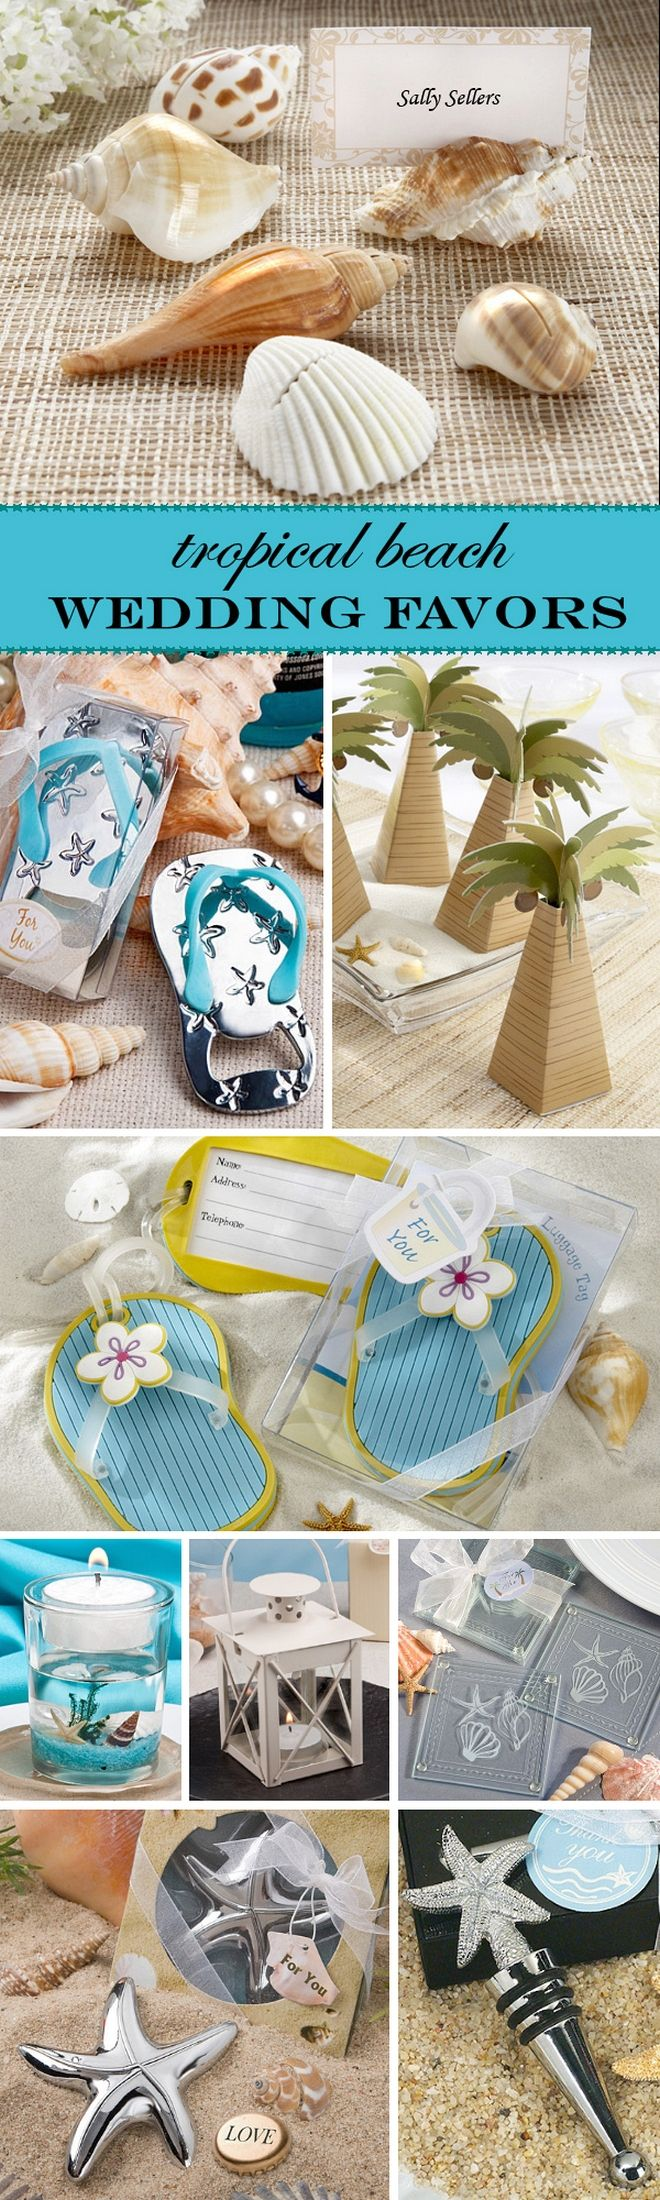 Amazing Tropical u0026 Beach Themed Wedding Favor